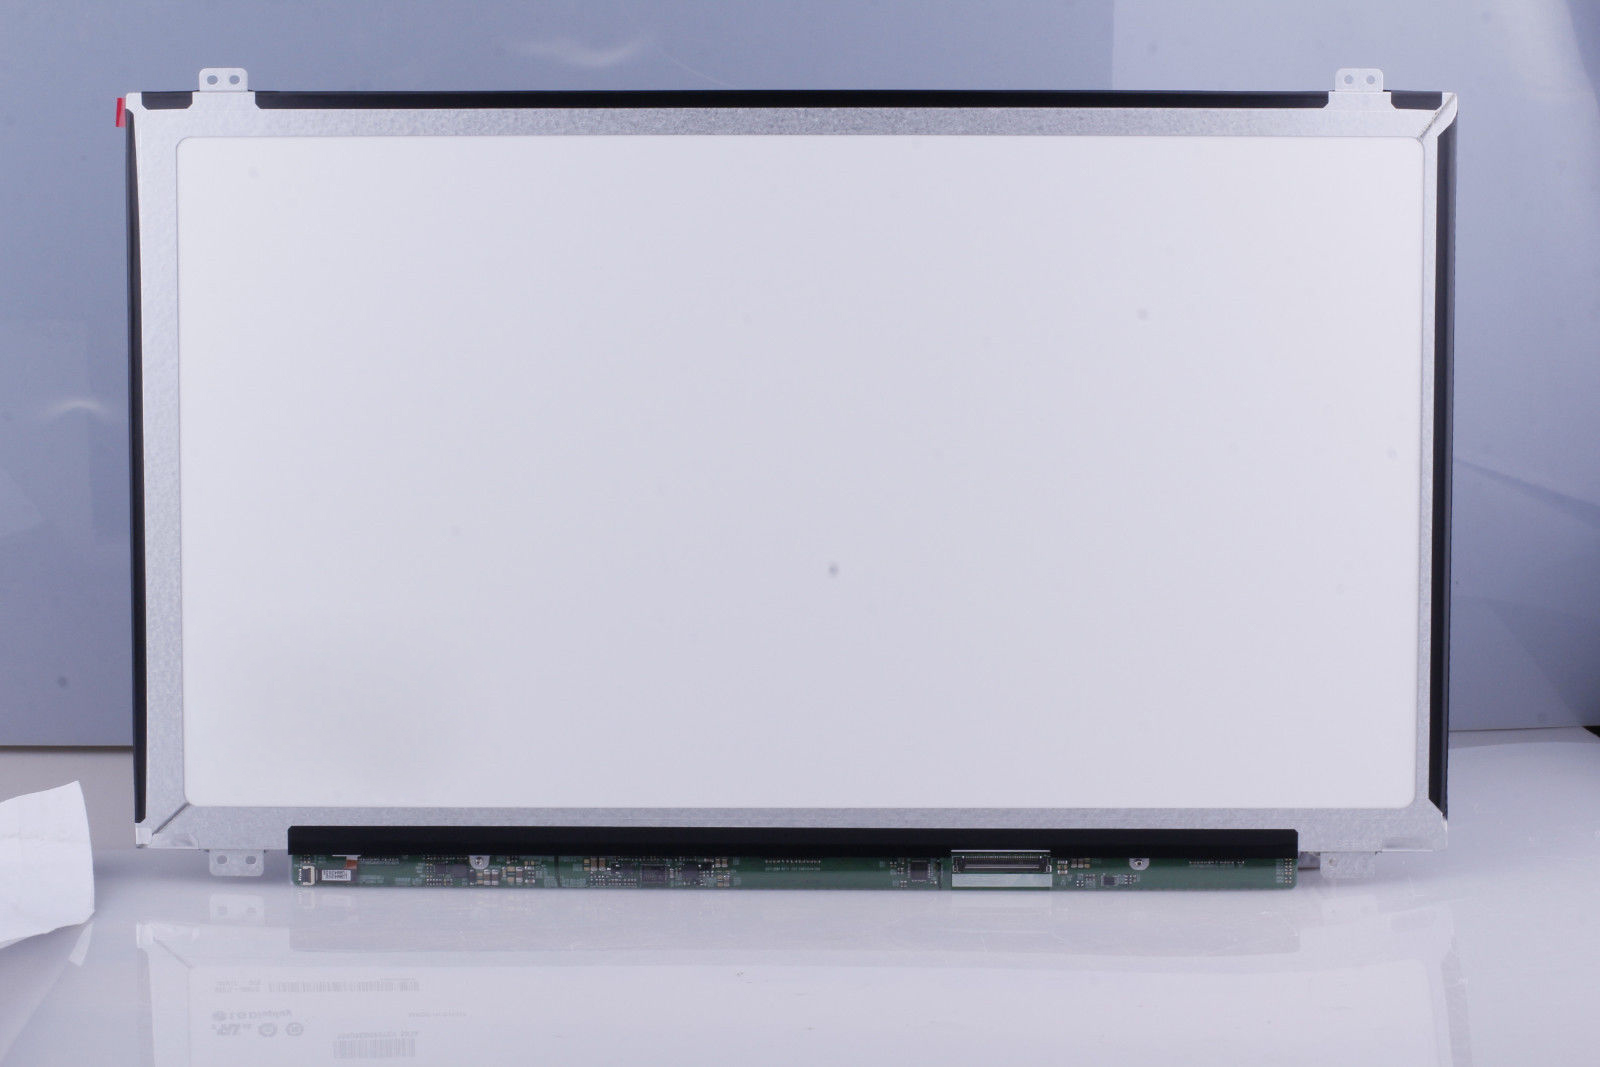 QuYing Laptop LCD Screen for HP Compaq ProBook 455 G2 J5P31UT (15.6 inch 1366x768 30Pin)